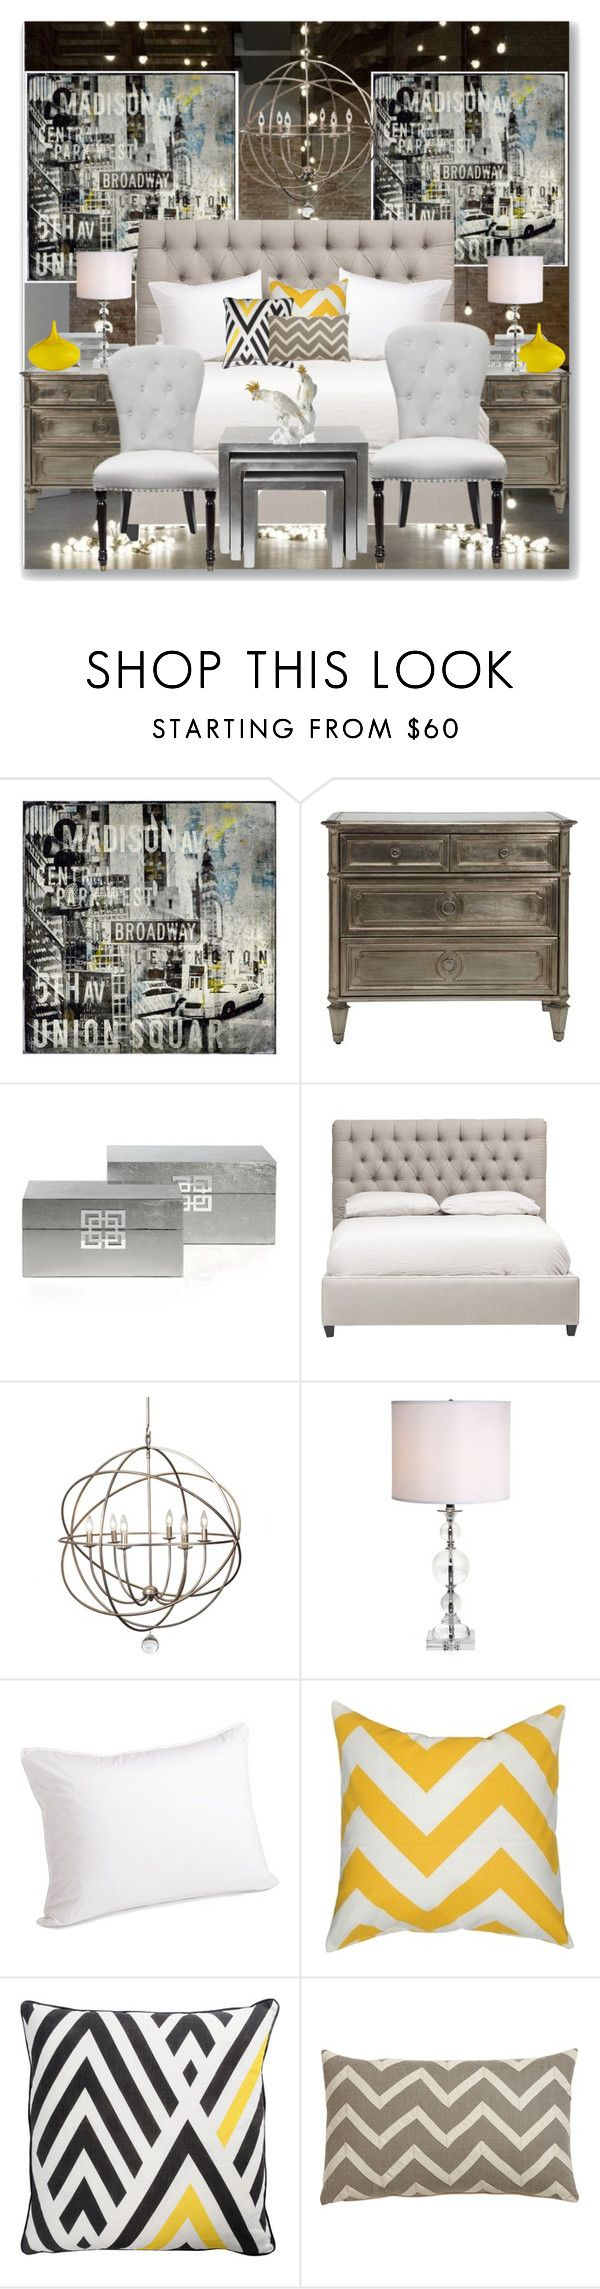 Bedroom -Bright Beginnings by lidia-solymosi on Polyvore featuring interior, interiors, interior design, home, home decor, interior decorating, Ethan Allen, Elisabeth Michael and bedroom